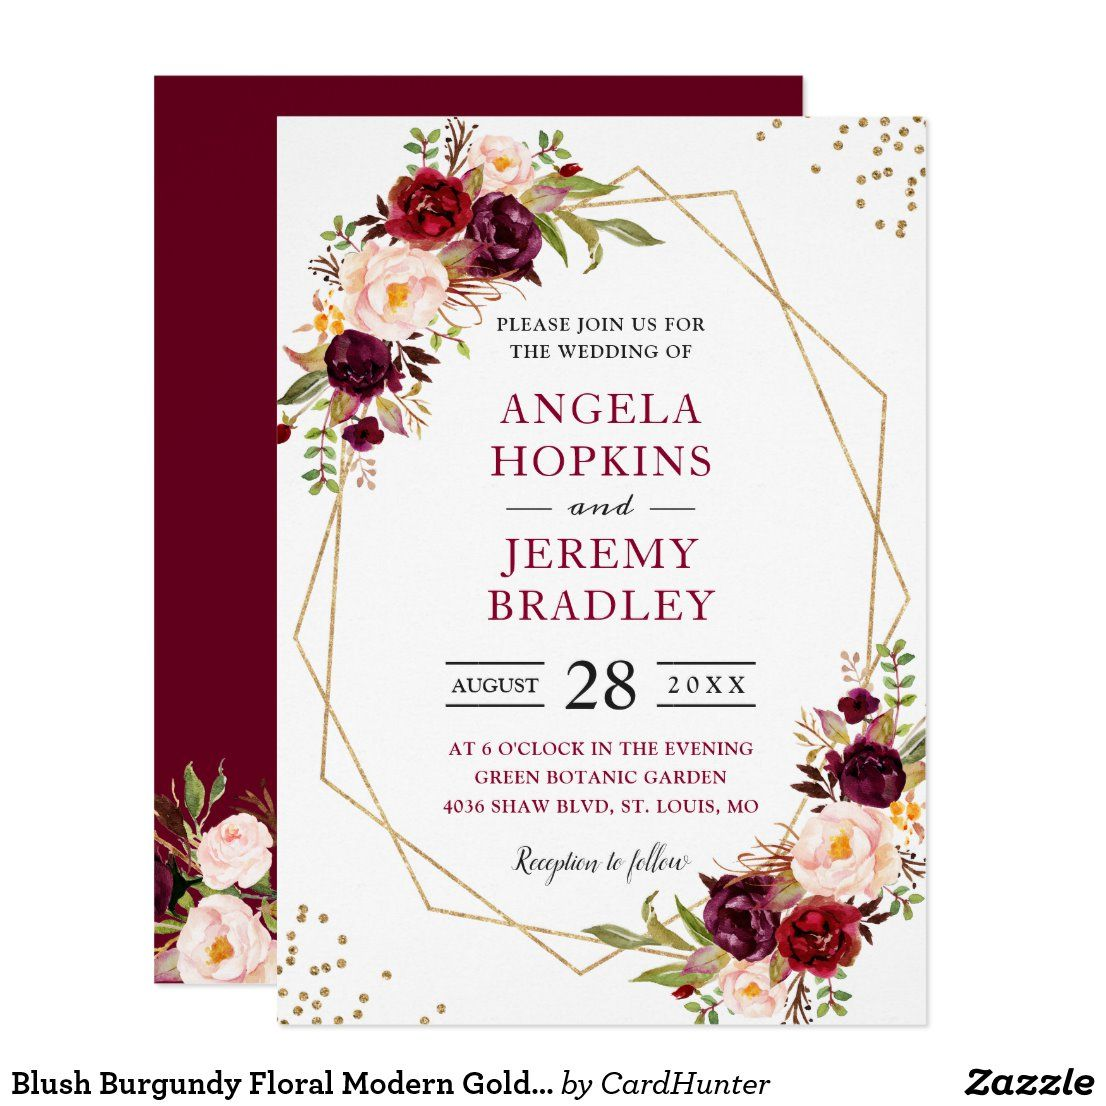 Blush Burgundy Floral Modern Gold Frame Wedding Invitation